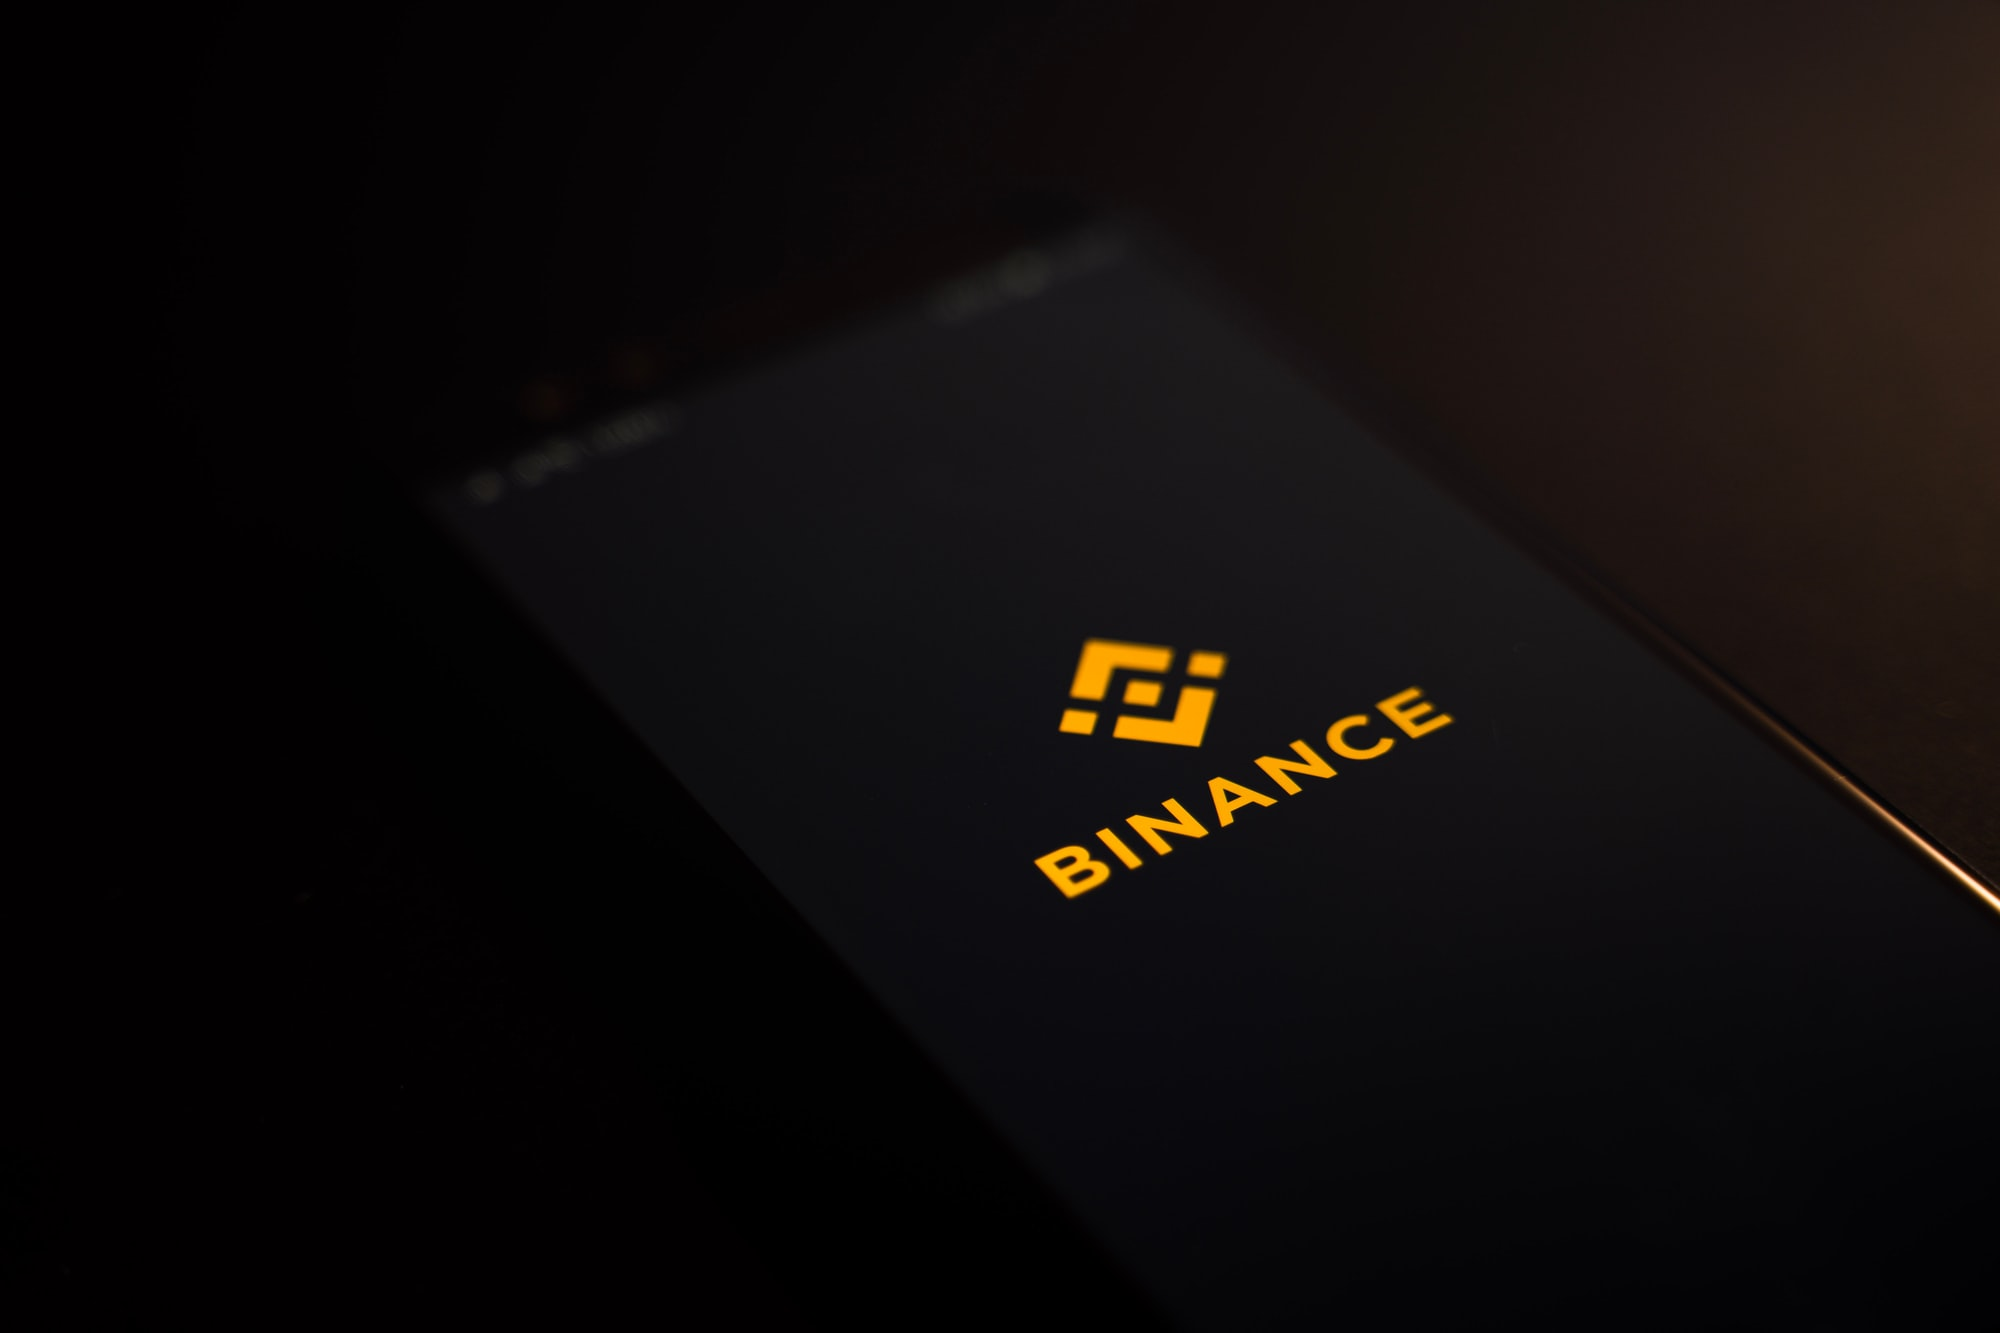 Best VPN for Binance - Top 3 VPN Alternatives Out There